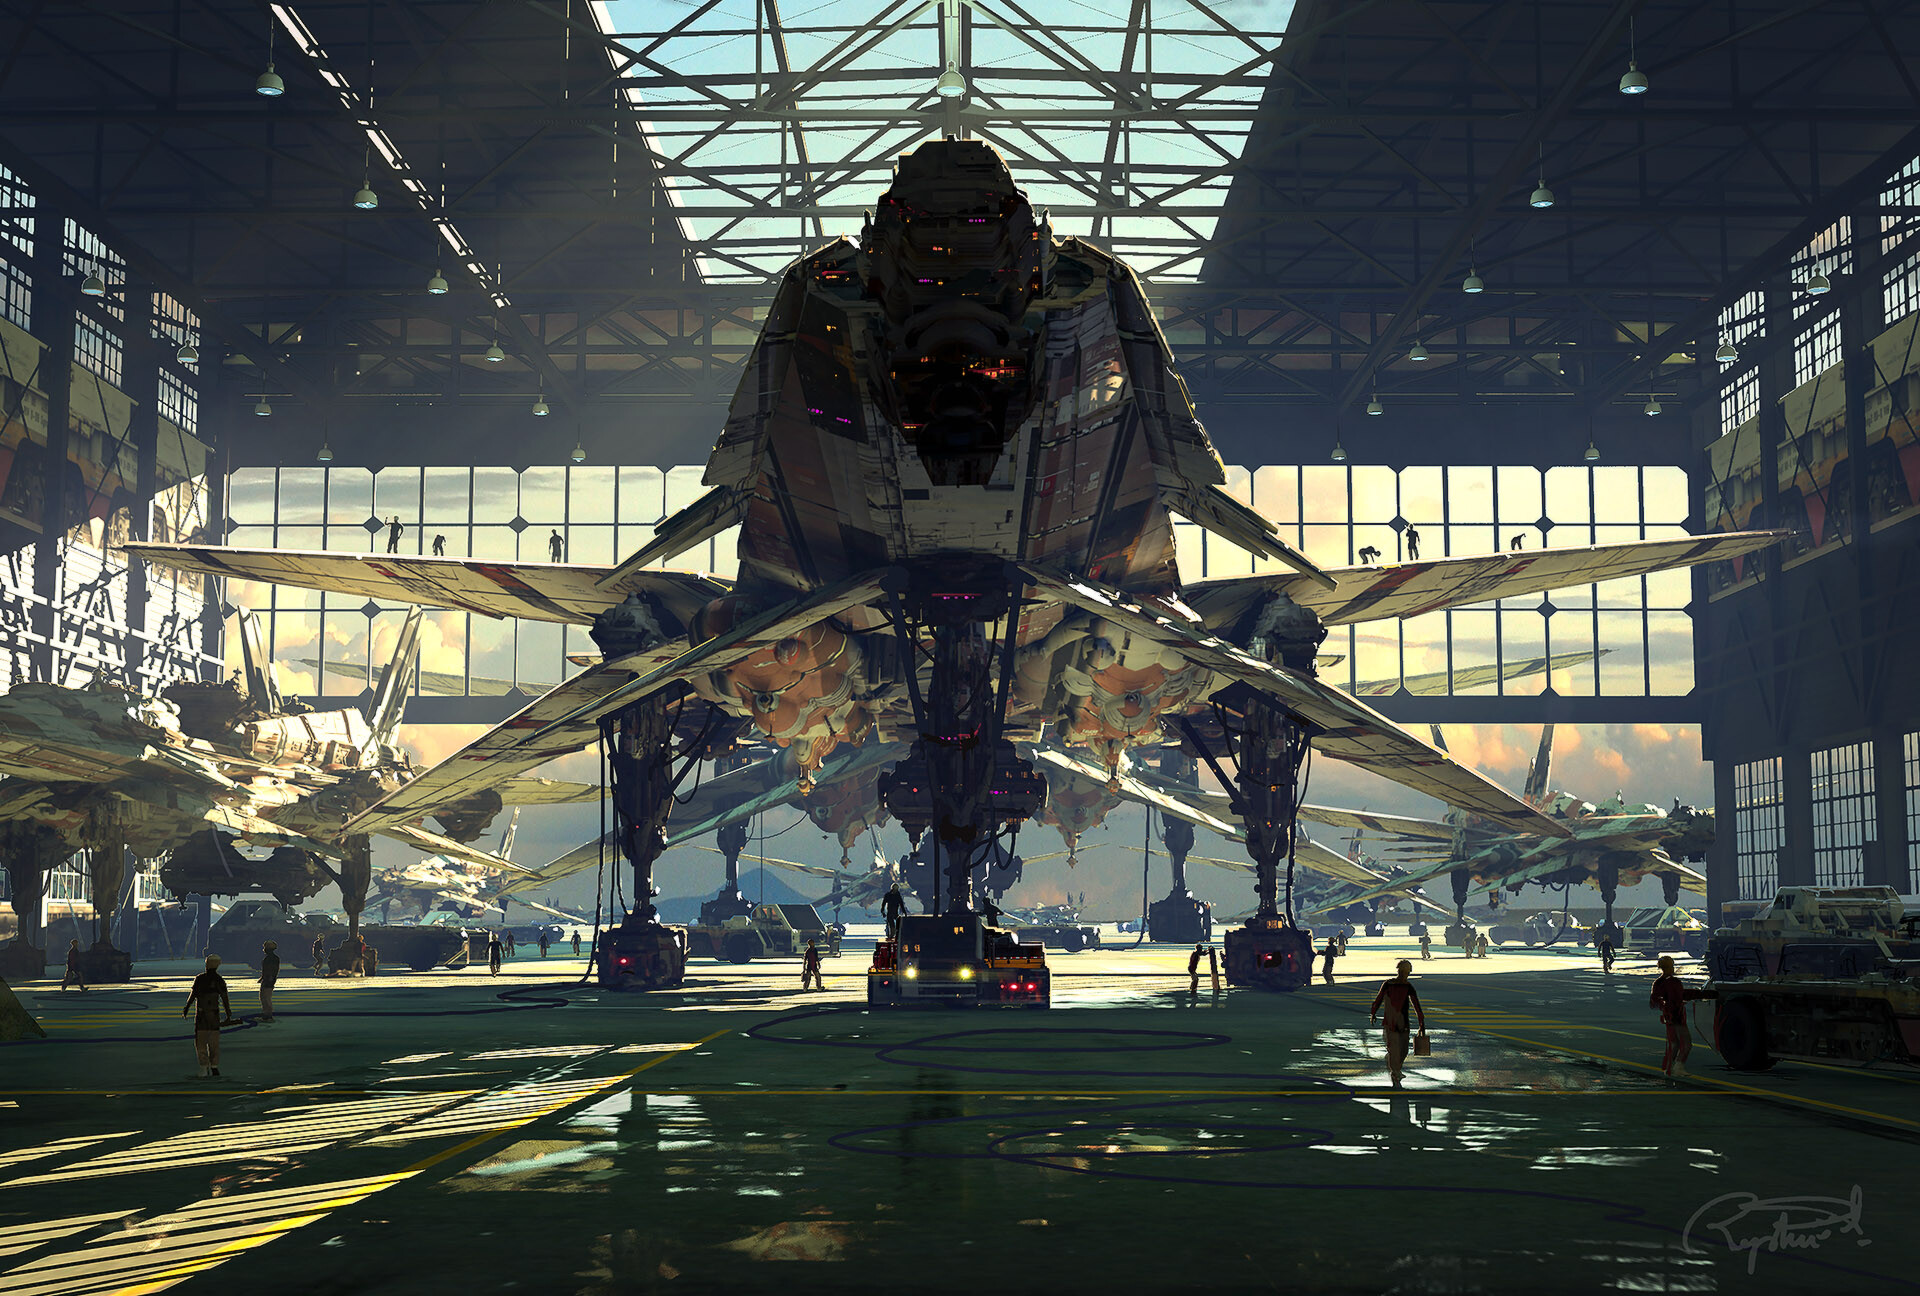 Amazing new sci-fi artworks by Raphael Lacoste